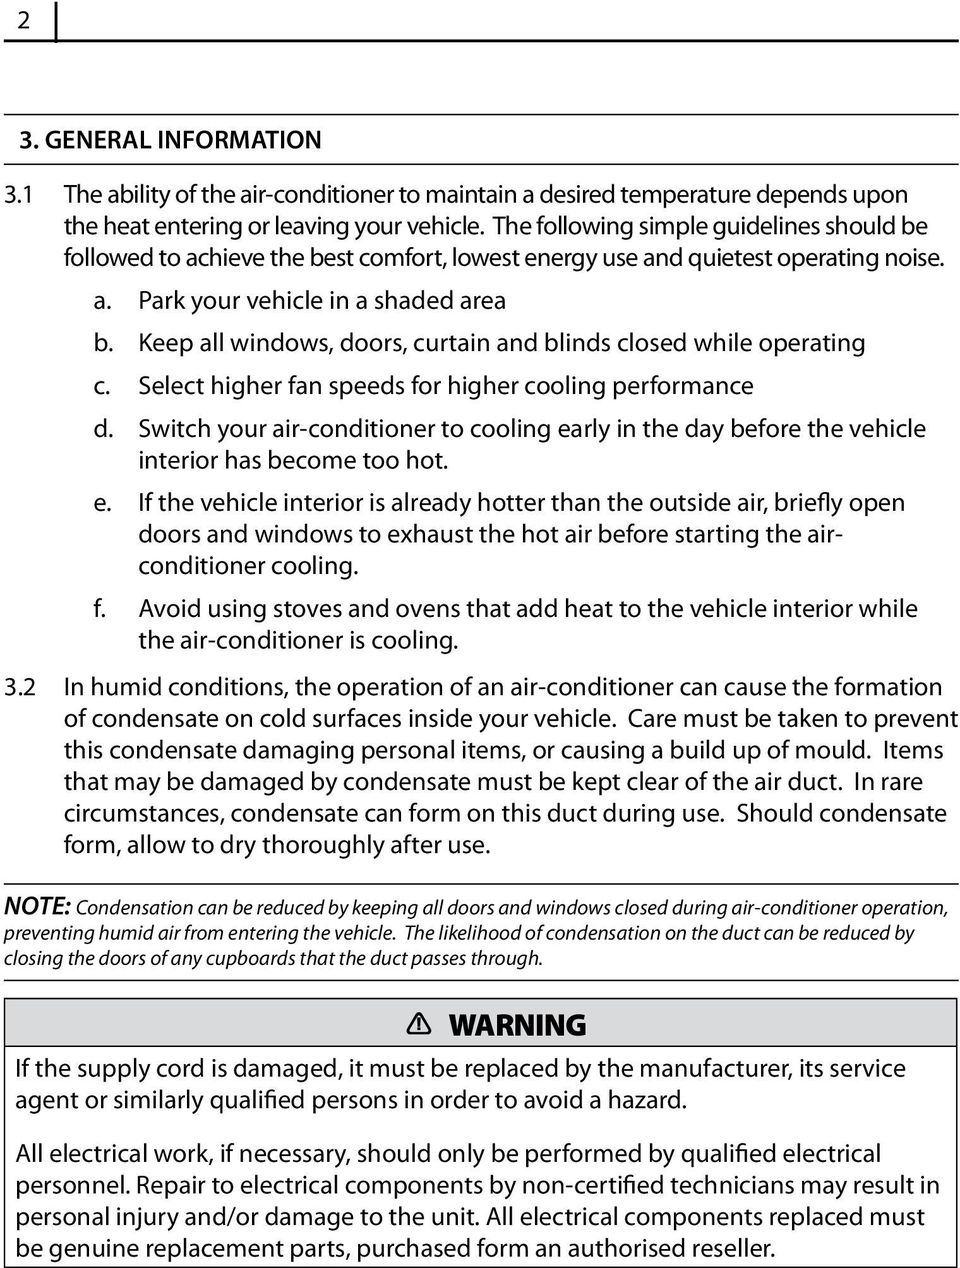 Ub1 air conditioning unit operating manual pdf keep all windows doors curtain and blinds closed while operating c select higher publicscrutiny Images